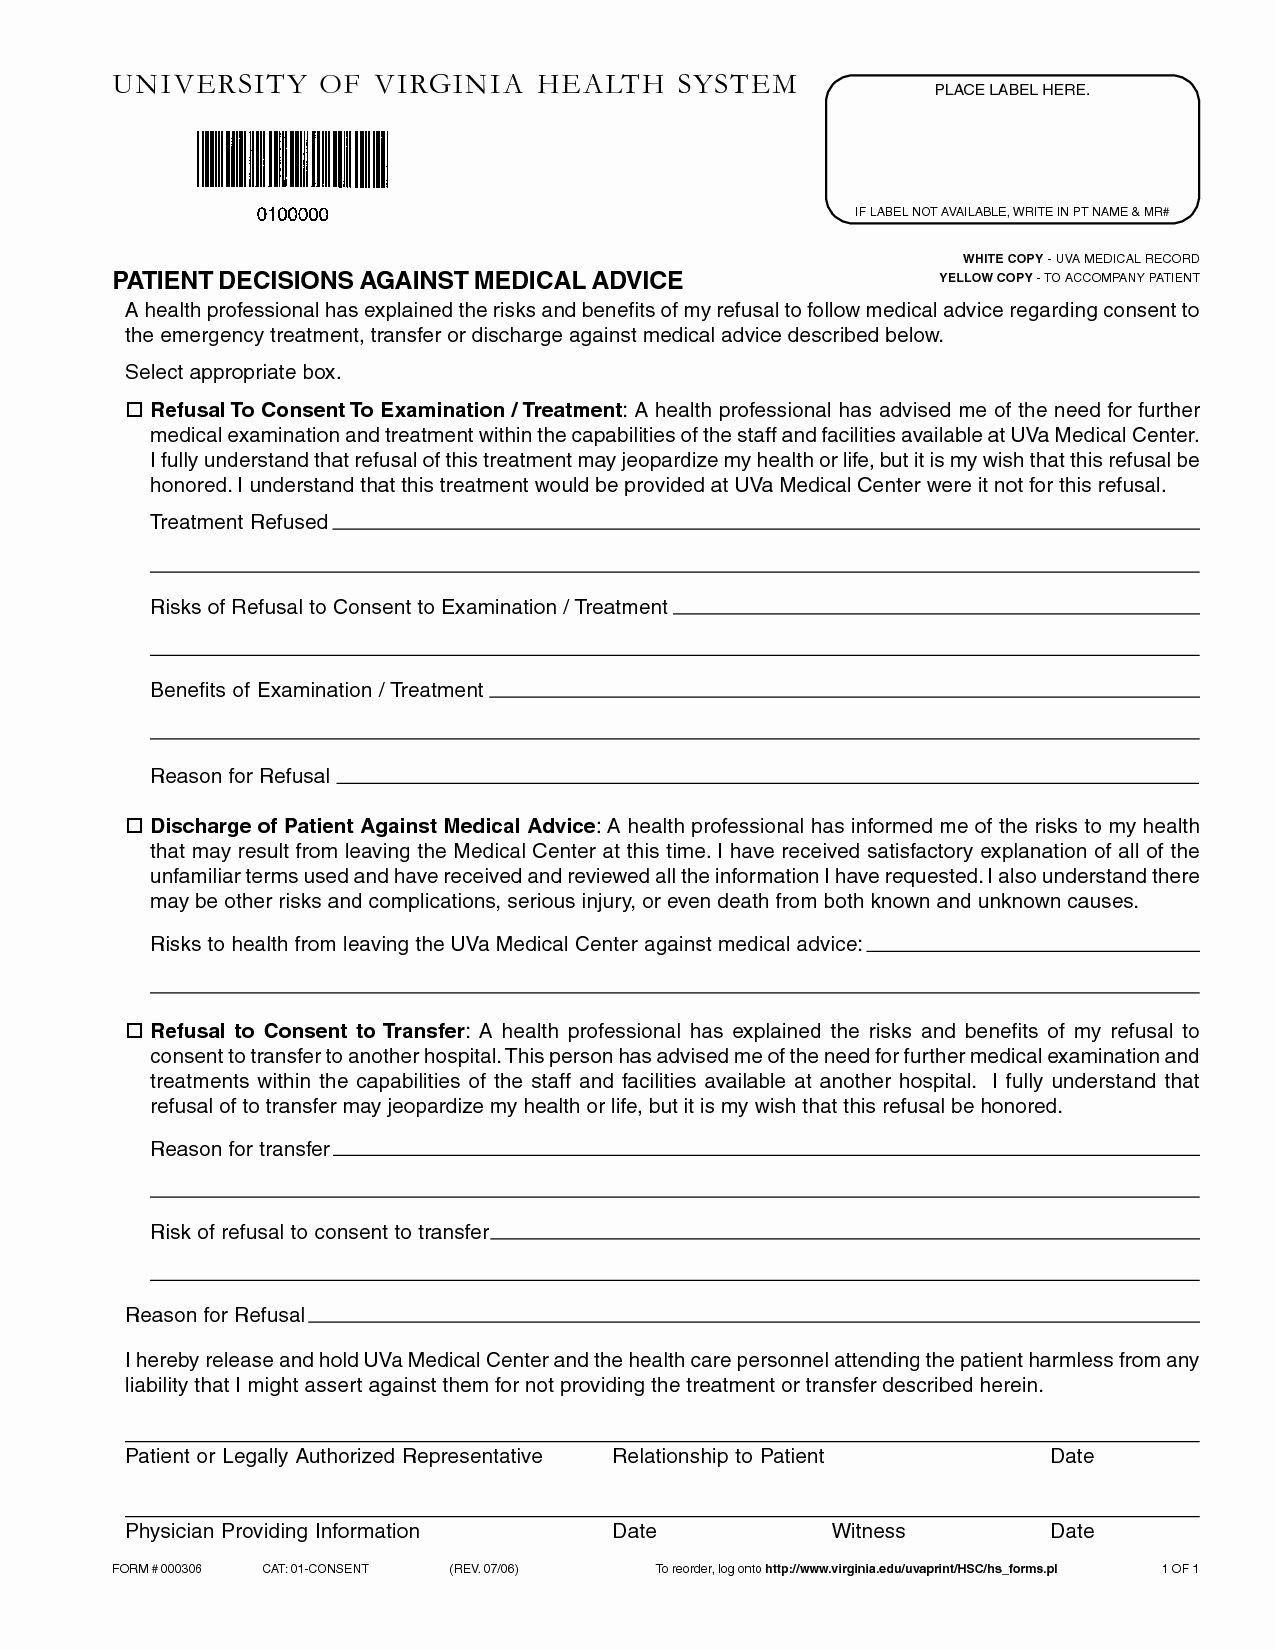 Hospital Discharge Form Template Awesome Blank Printable Hospital